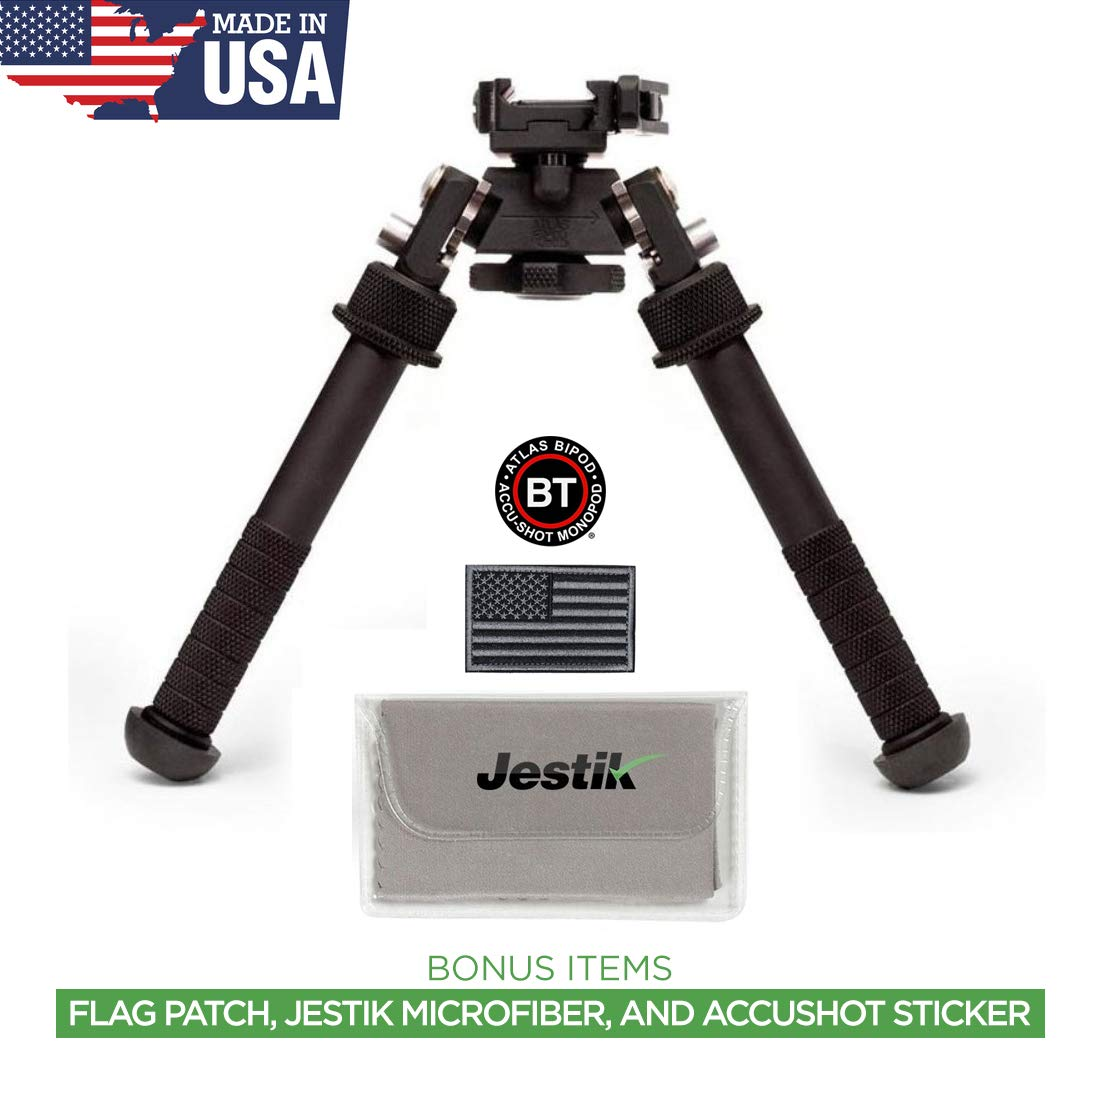 Accu-Shot Atlas Bipod BT46-LW17 PSR with ADM 170-S Lever Plus USA Flag Patch and Jestik Microfiber Cleaning Cloth by Accu-Shot